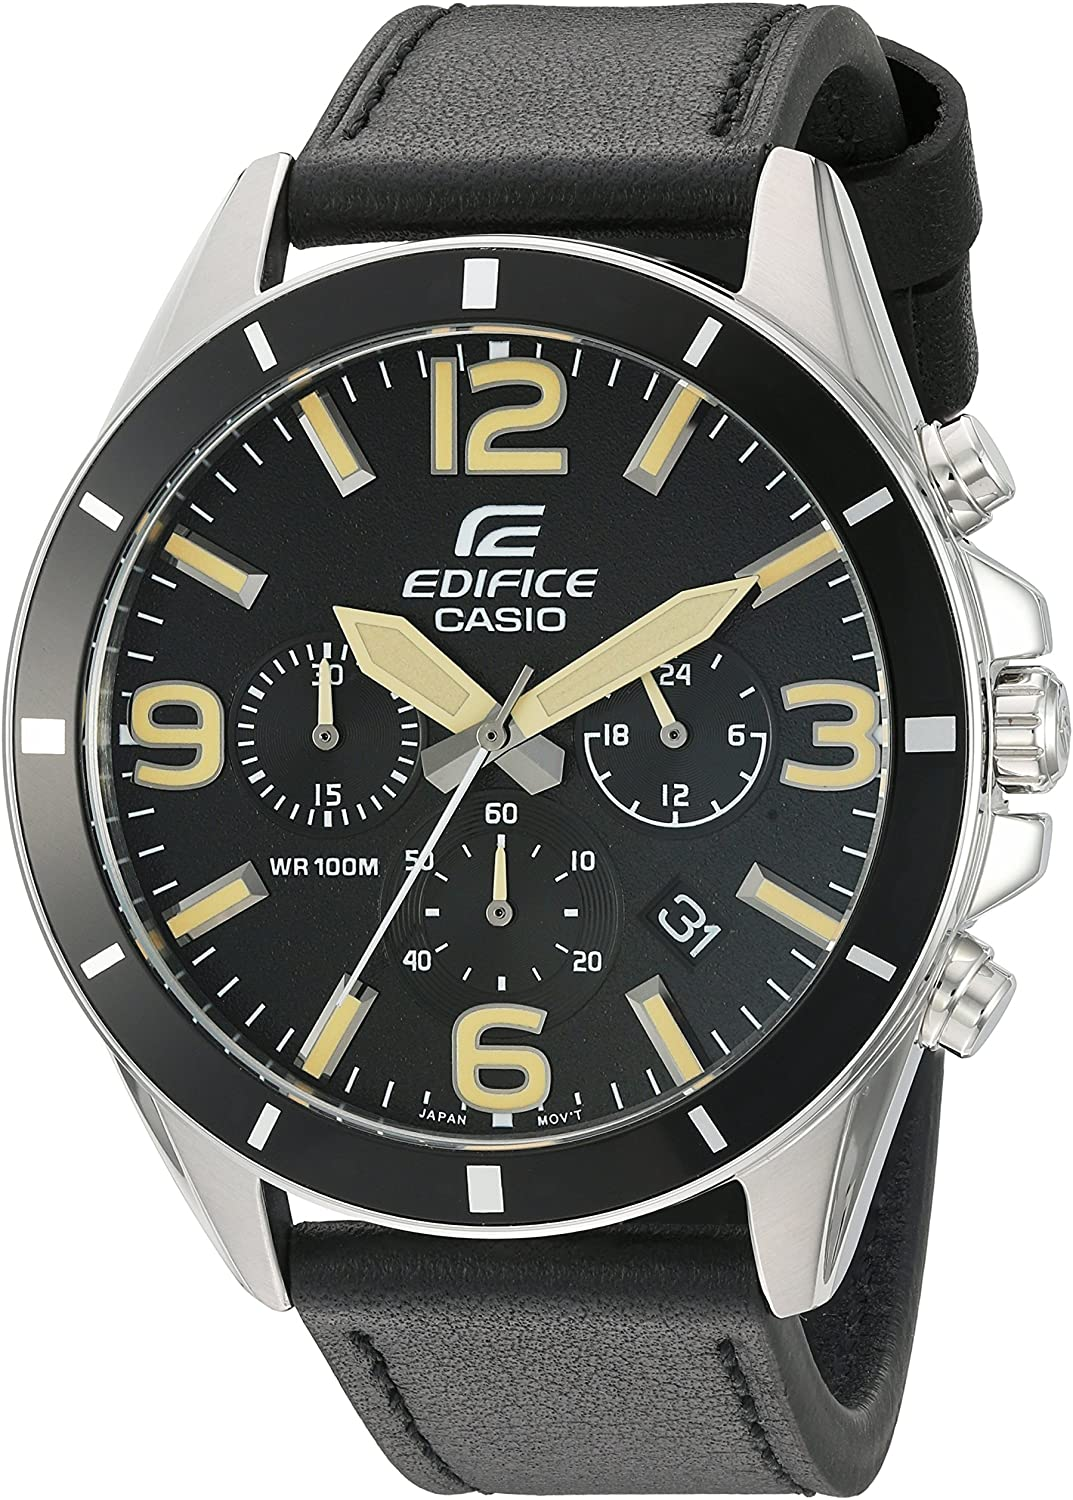 Casio Men s Edifice Quartz Stainless Steel and Leather Watch, Color Black Model EFR-553L-1BVCF